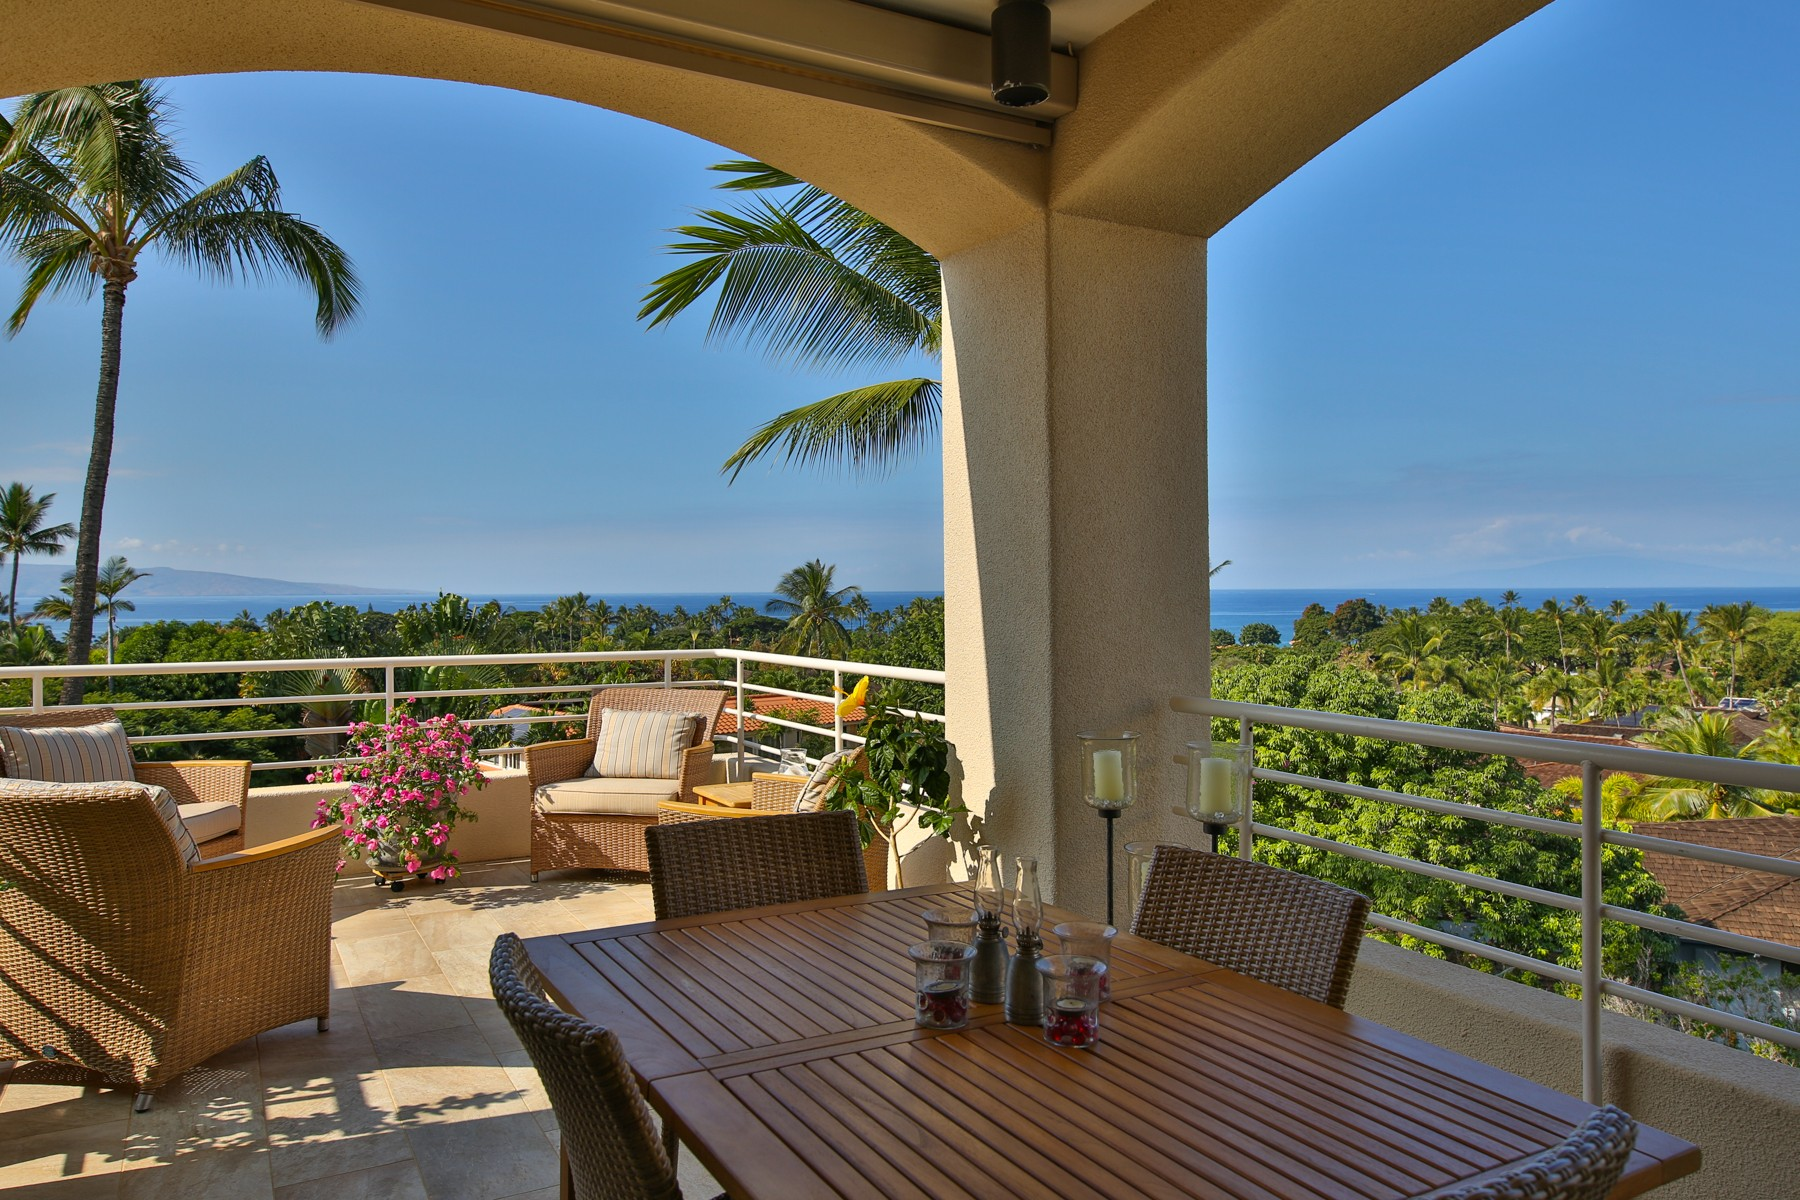 Piso por un Venta en Intriguing Ocean & Sunset Views All-Year-round 3150 Wailea Alanui Drive, Wailea Palms 3504 Wailea, Hawaii, 96753 Estados Unidos